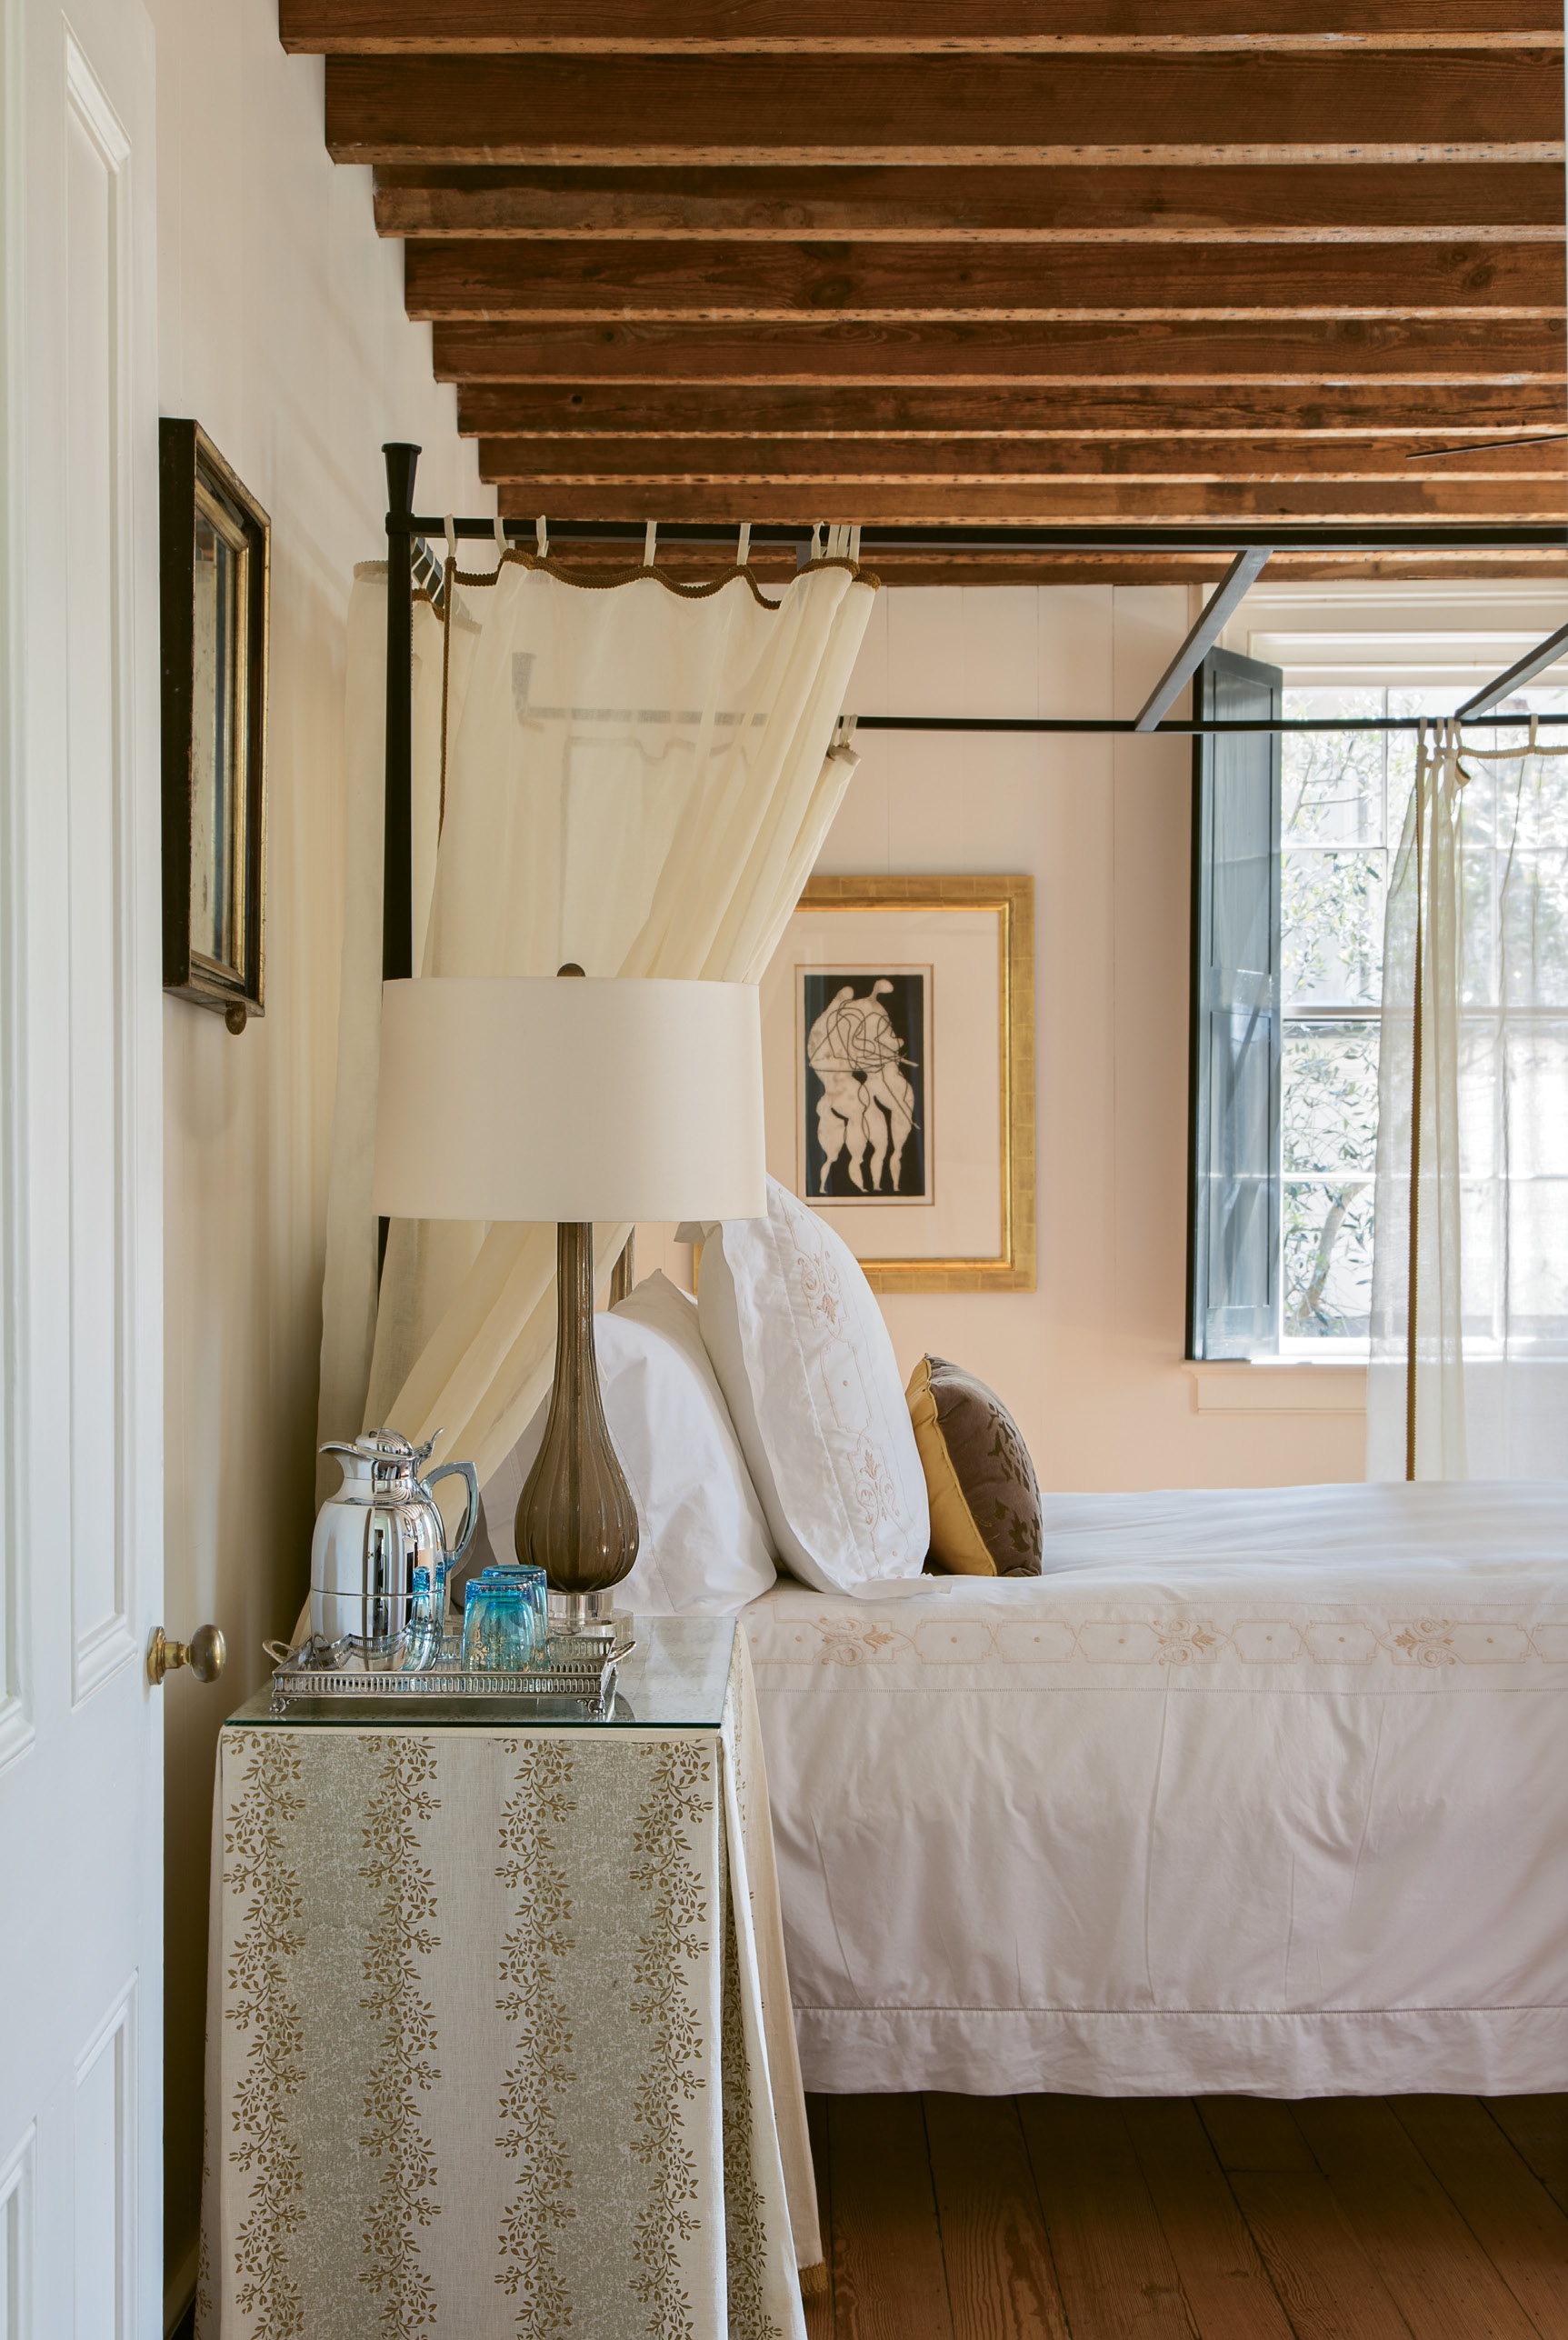 The separate guest quarters, located within what was once a detached kitchen house, feature original exposed wood beams and wood flooring.